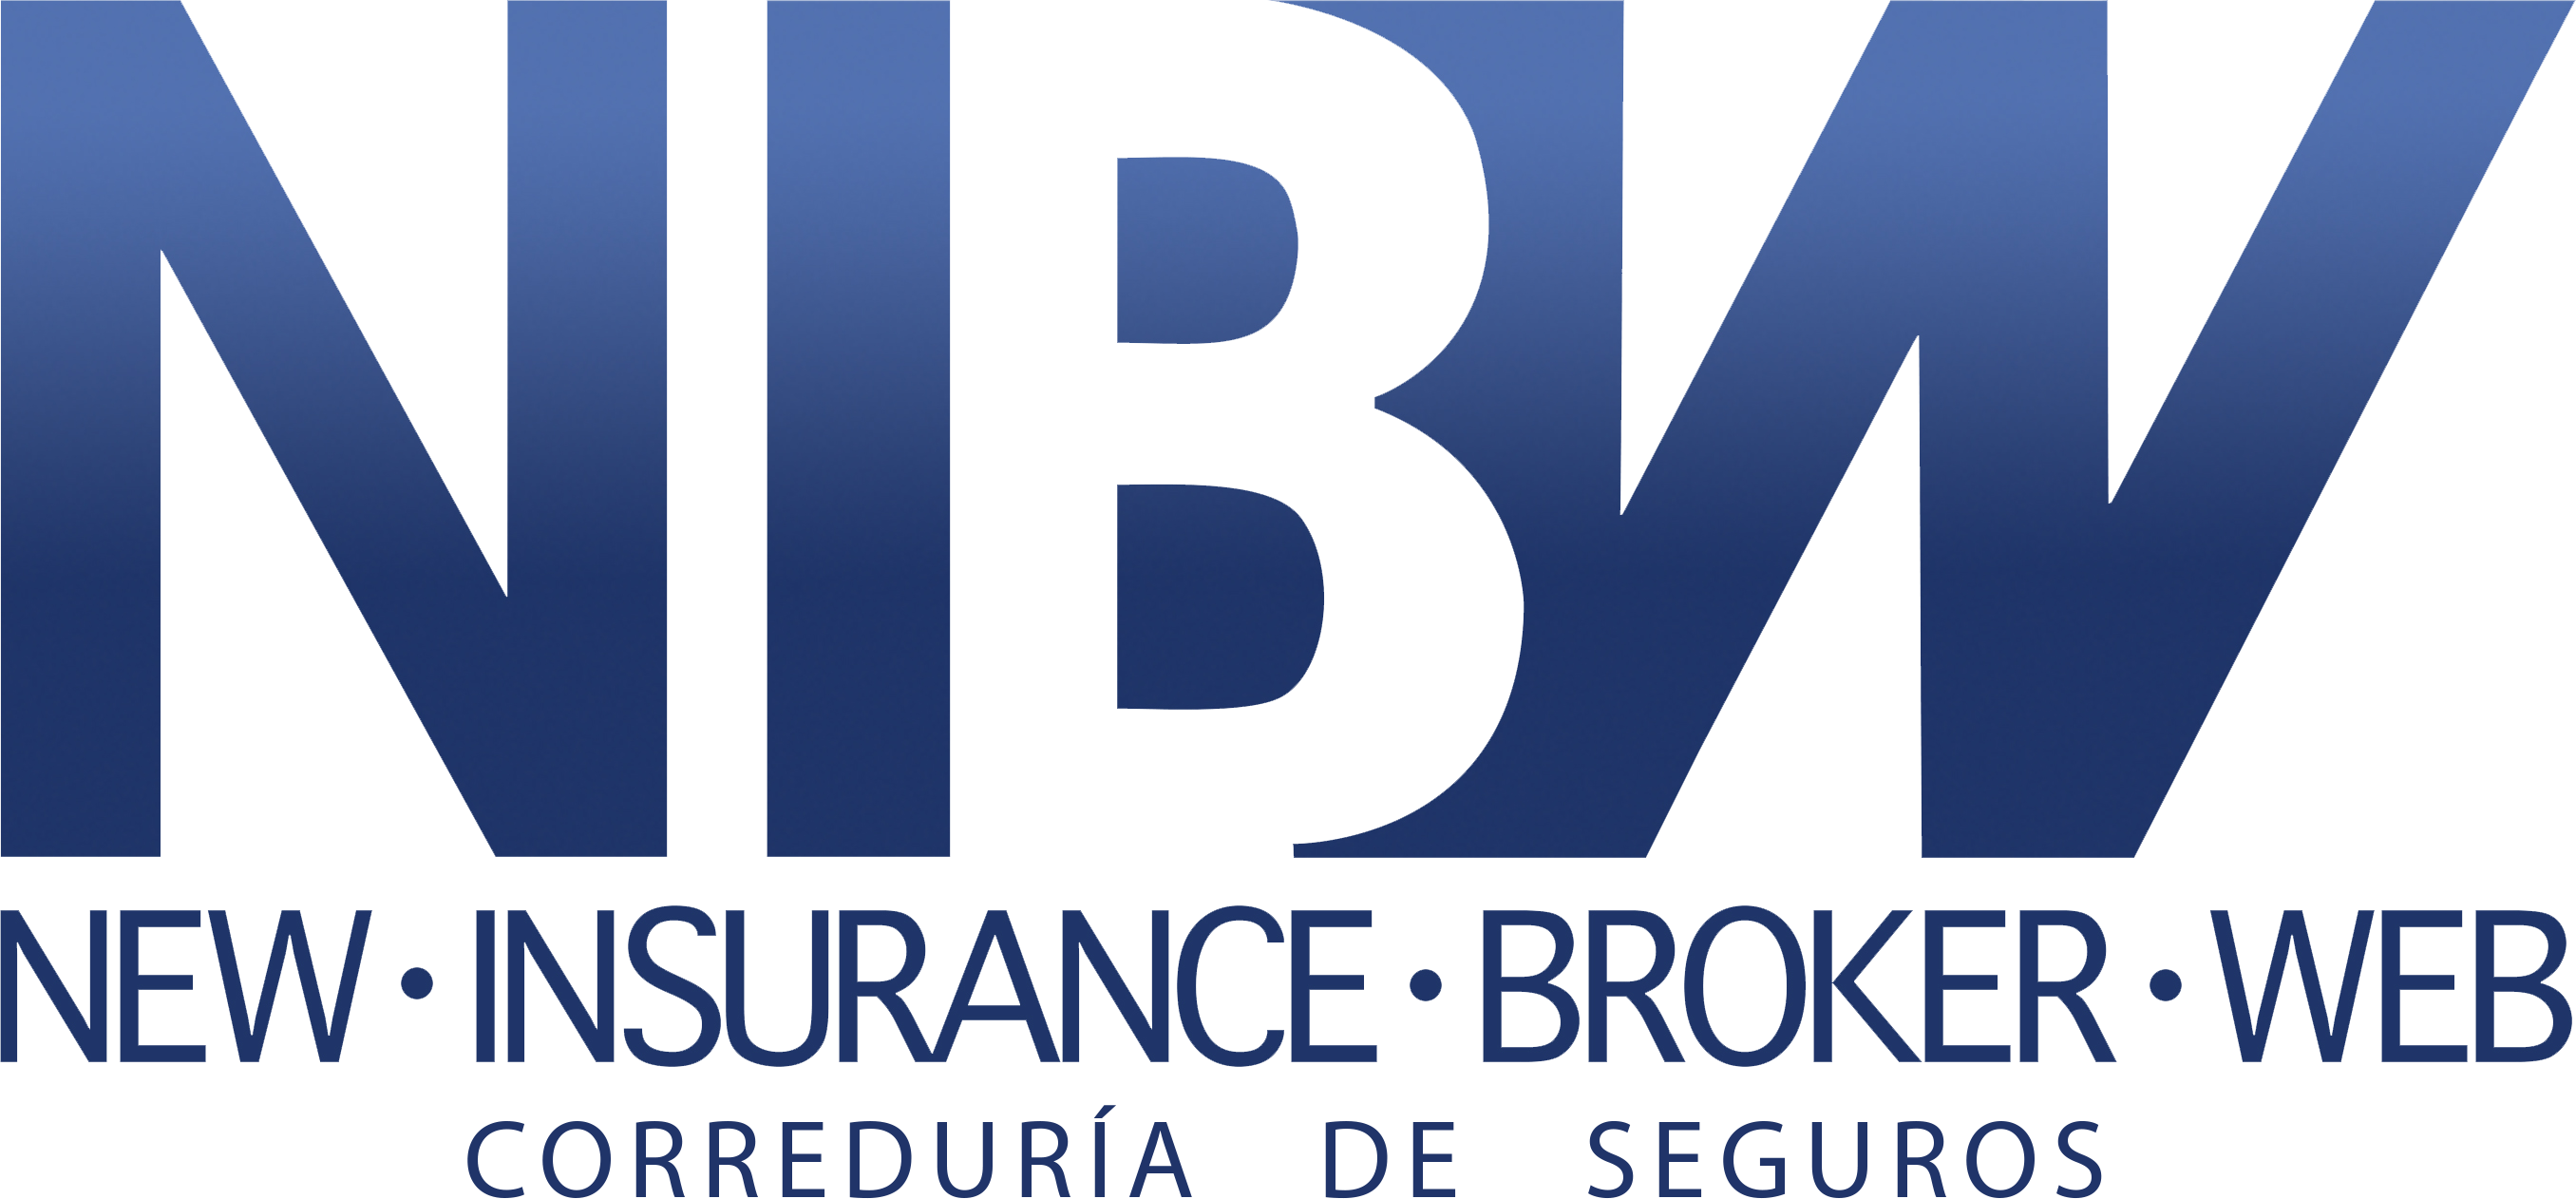 New Insurance Broker Web Correduría de Seguros S.L.